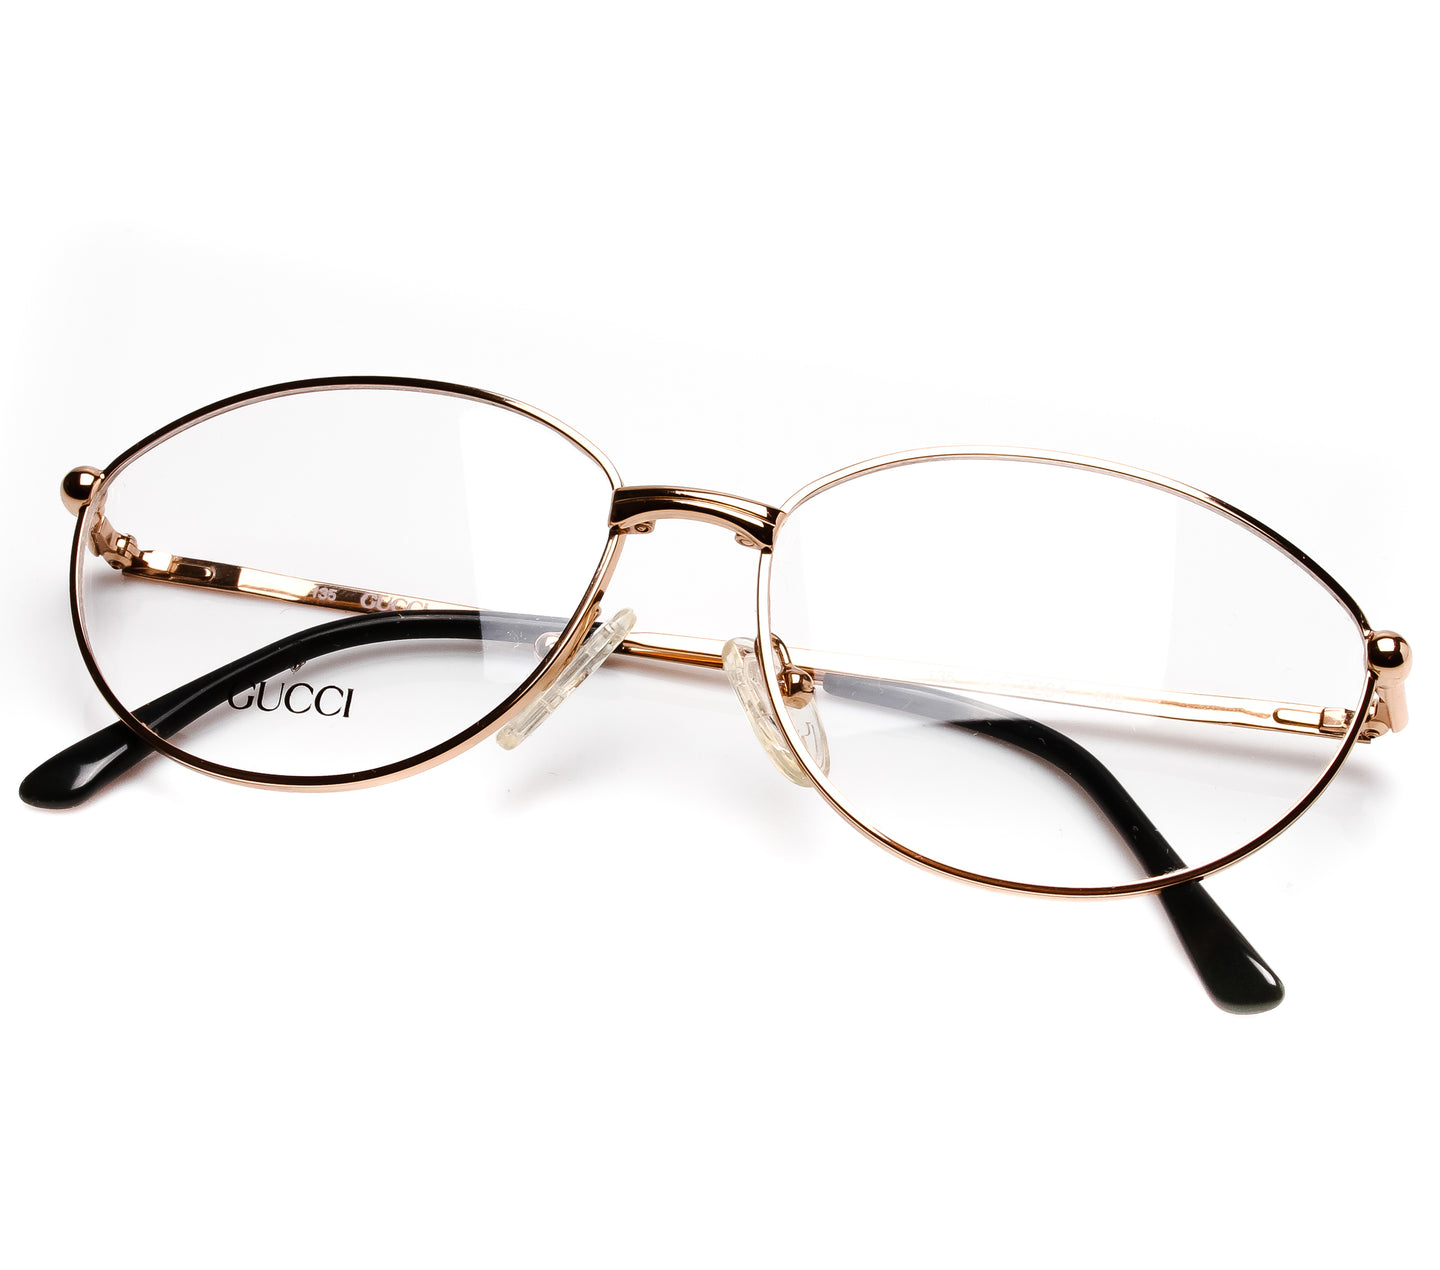 Gucci 2264 000 Thumbnail, Gucci , glasses frames, eyeglasses online, eyeglass frames, mens glasses, womens glasses, buy glasses online, designer eyeglasses, vintage sunglasses, retro sunglasses, vintage glasses, sunglass, eyeglass, glasses, lens, vintage frames company, vf